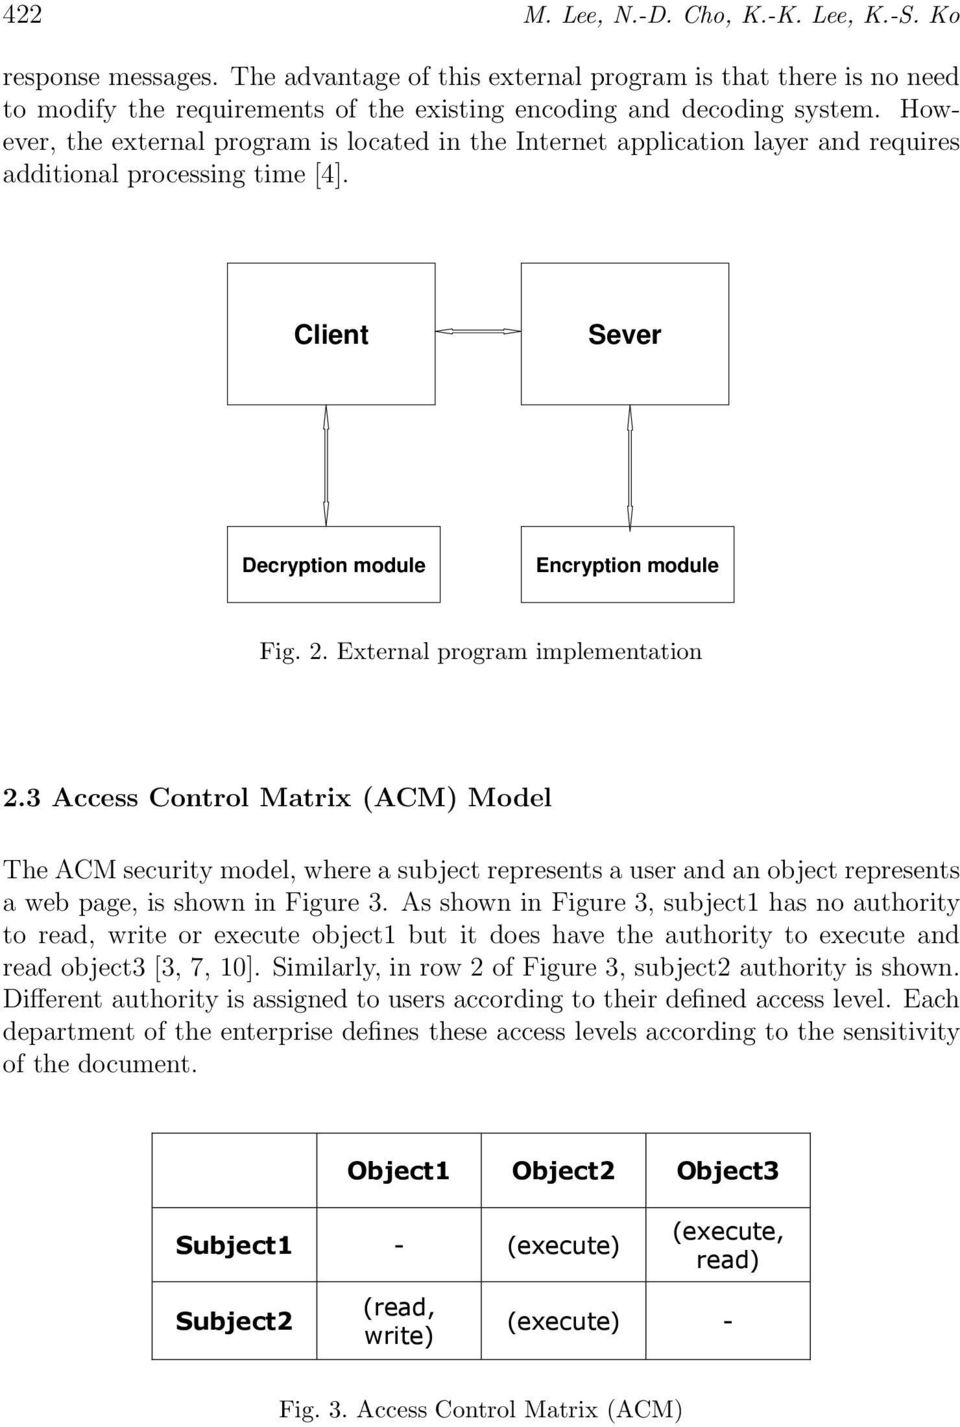 External program implementation 2.3 Access Control Matrix (ACM) Model The ACM security model, where a subject represents a user and an object represents a web page, is shown in Figure 3.